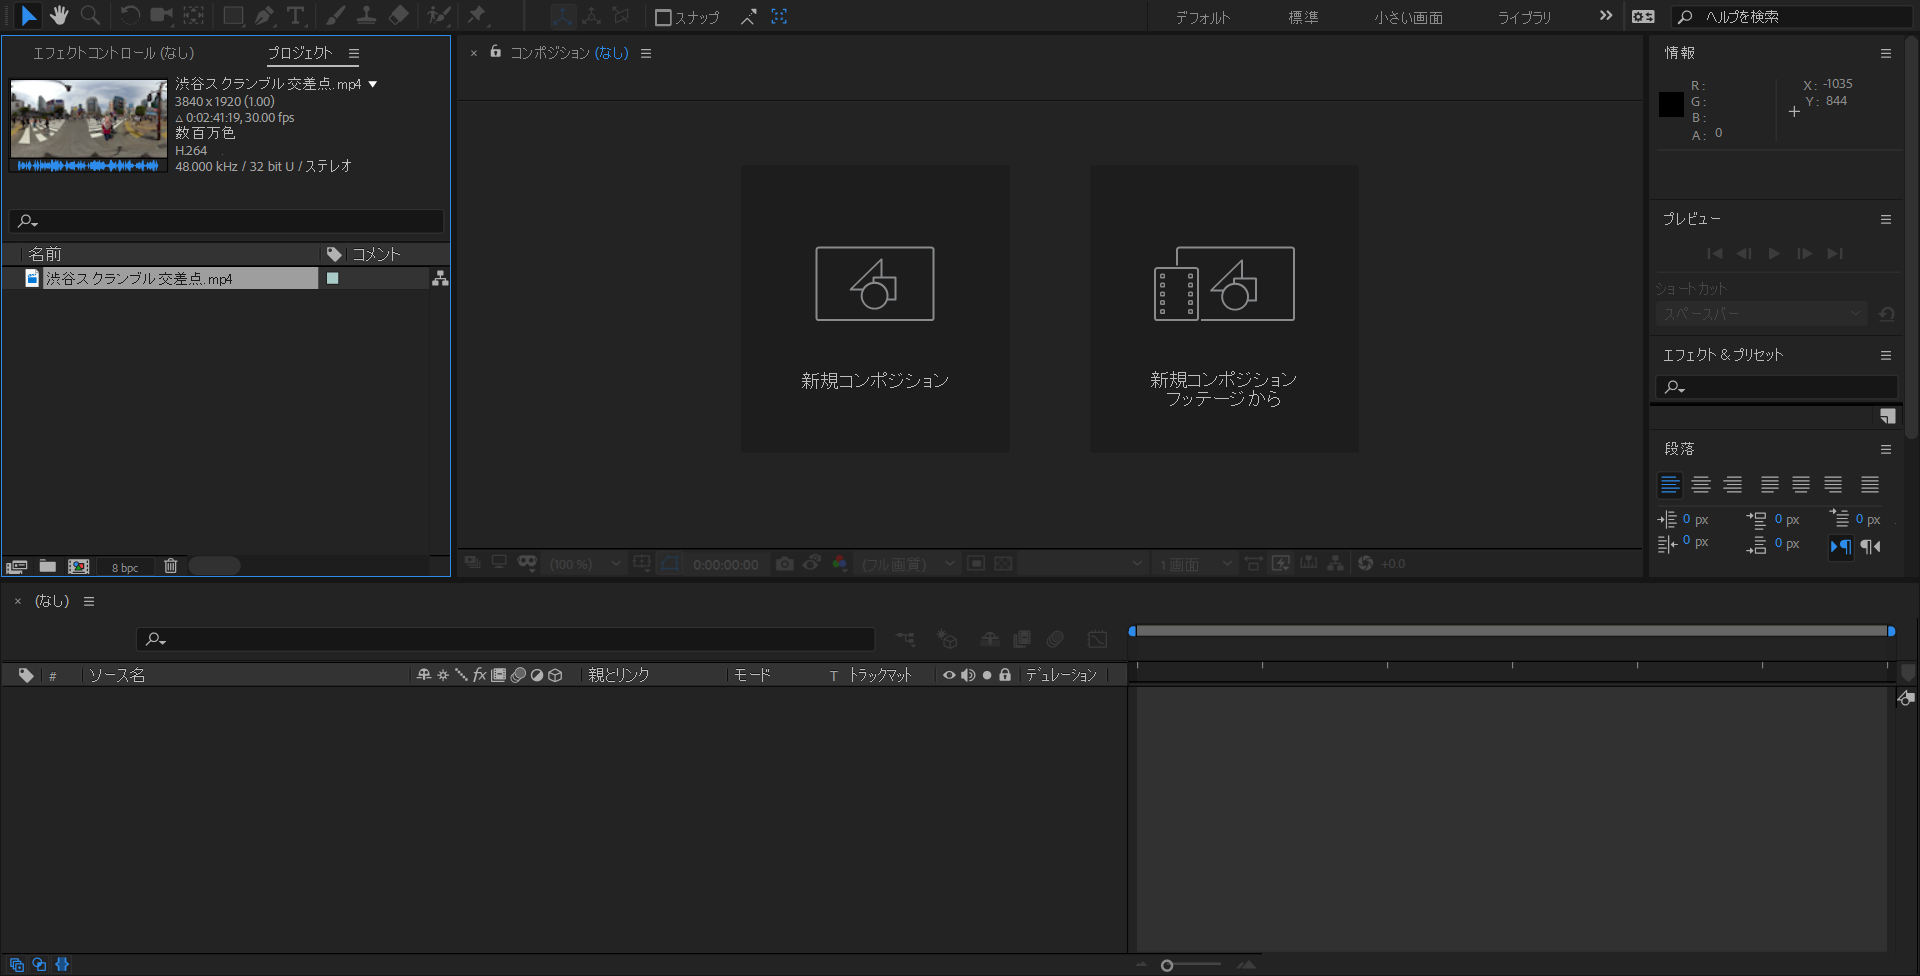 Adobe After Effects サンプル画像